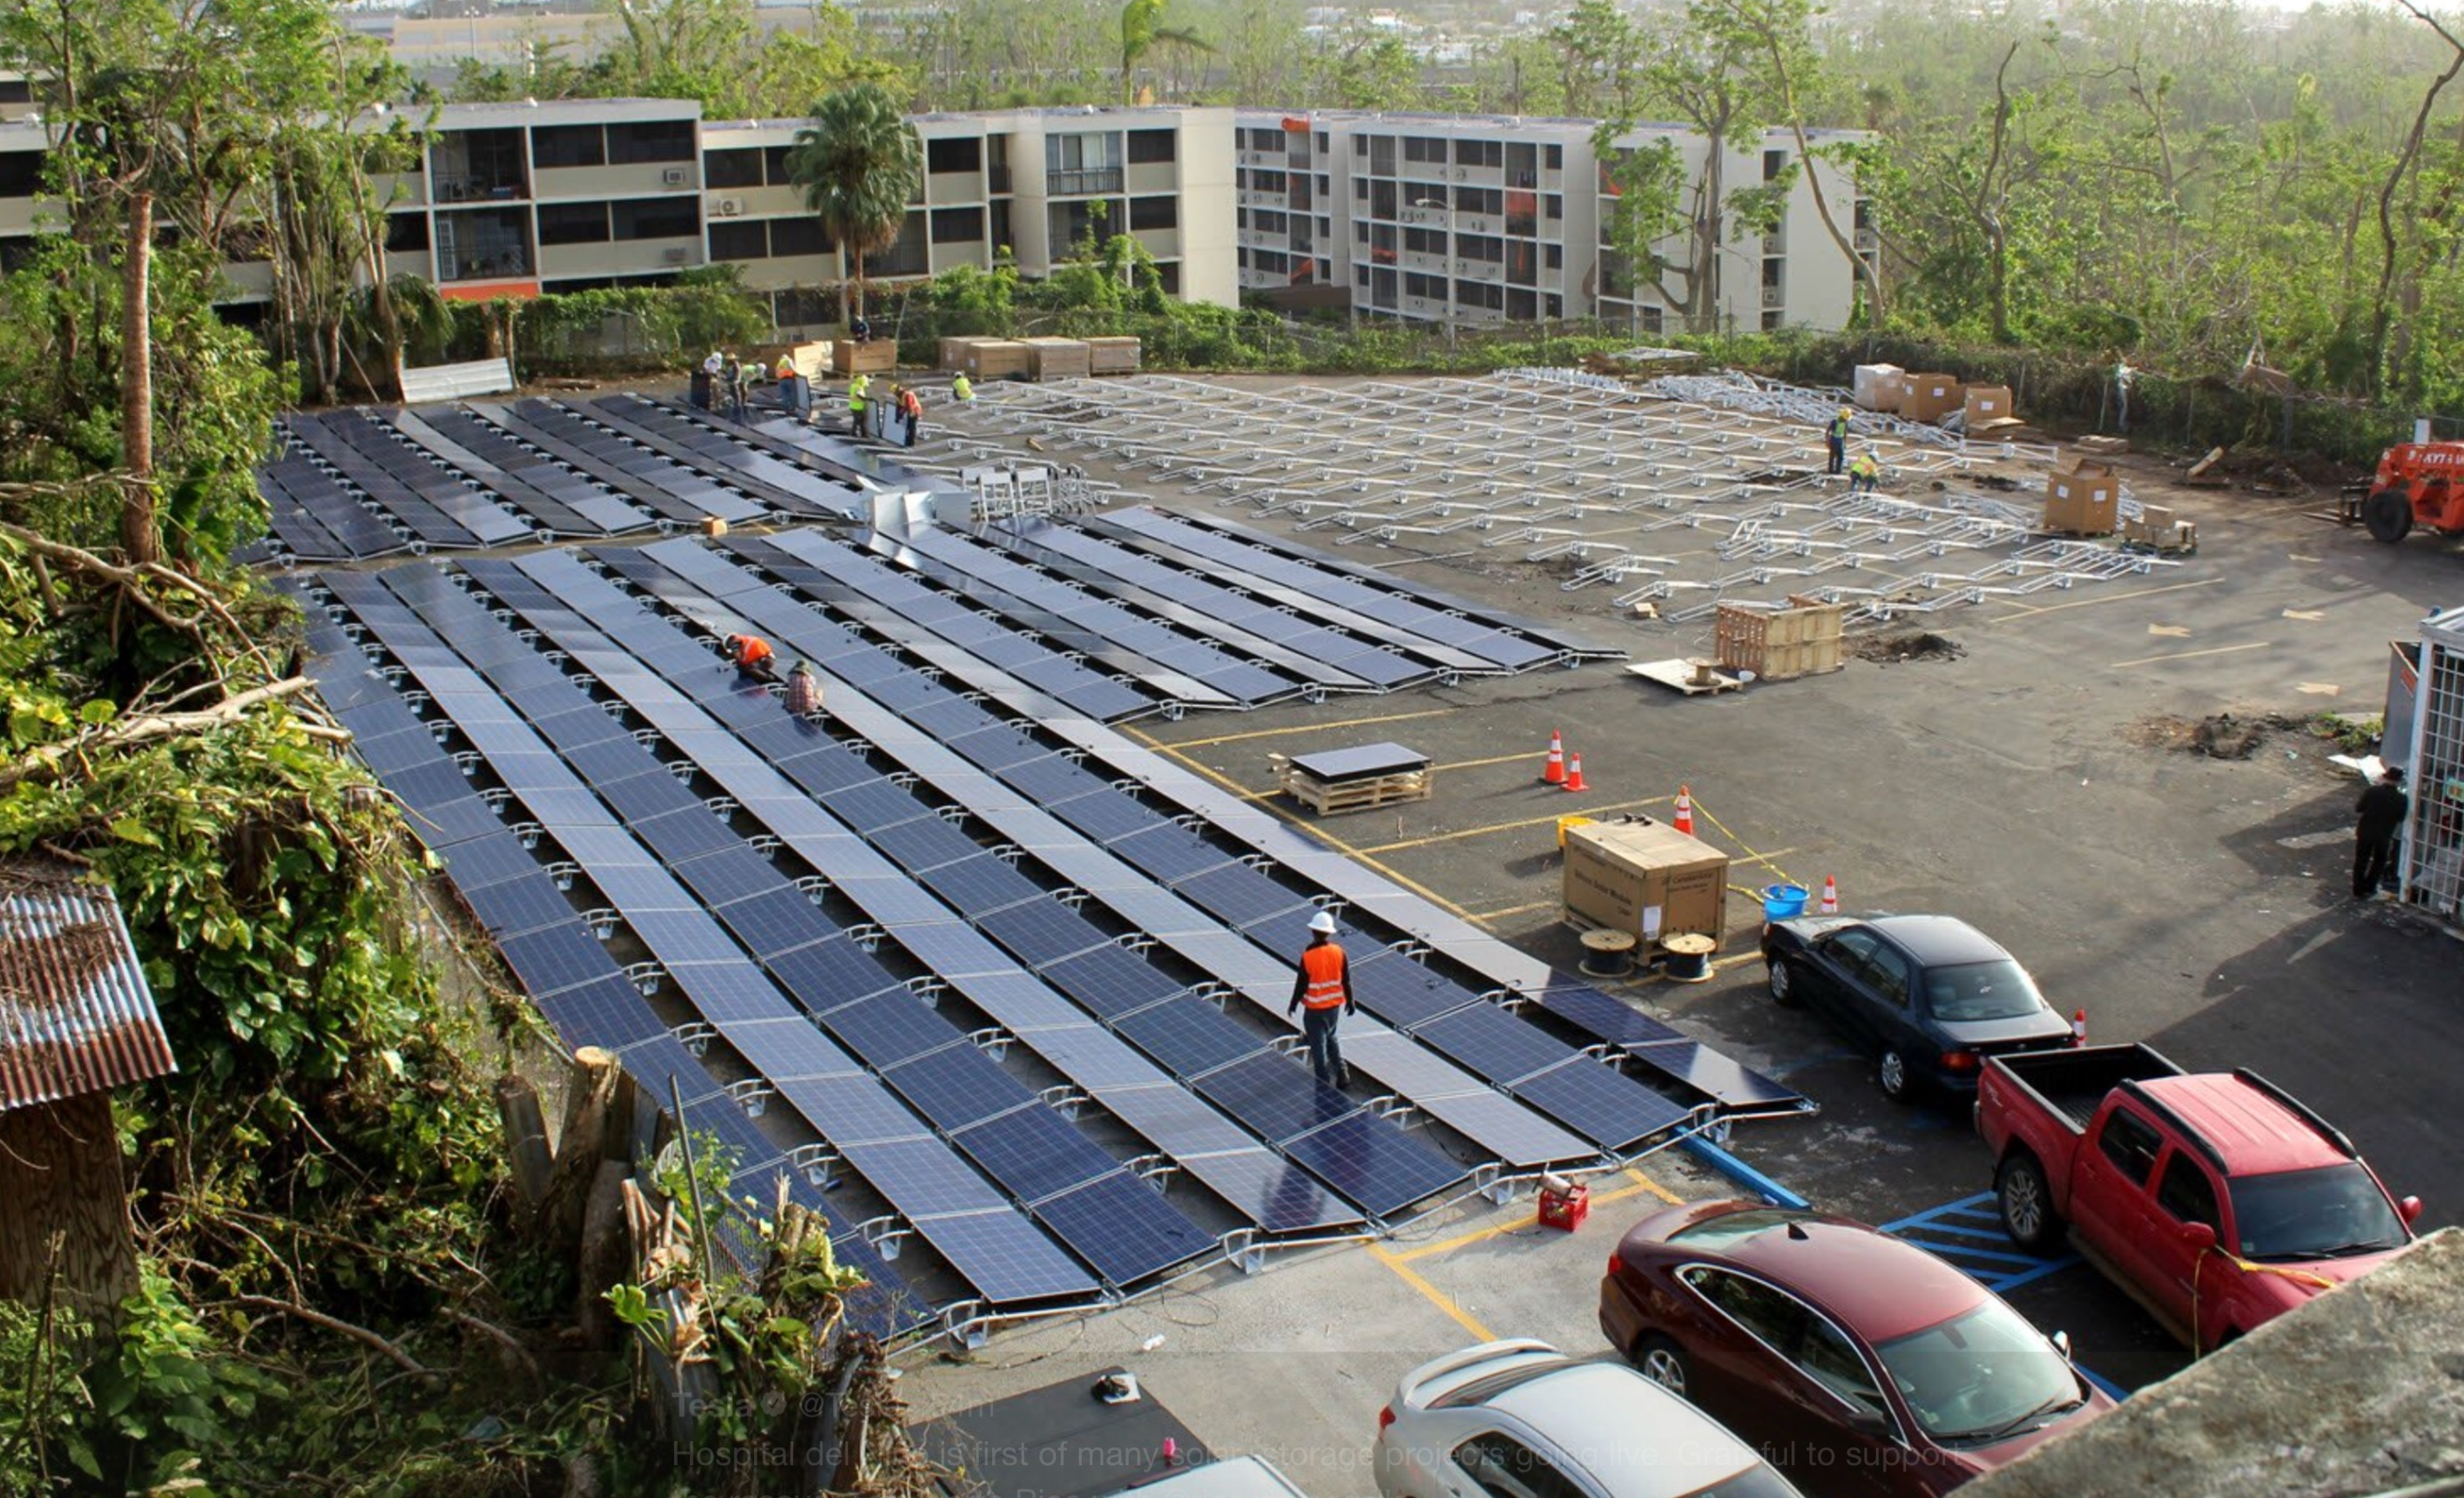 Solar panels set up by Tesla, are seen at the San Juan Children's Hospital, after the island was hit by Hurricane Maria in September, in San Juan, Puerto Rico, 2017.